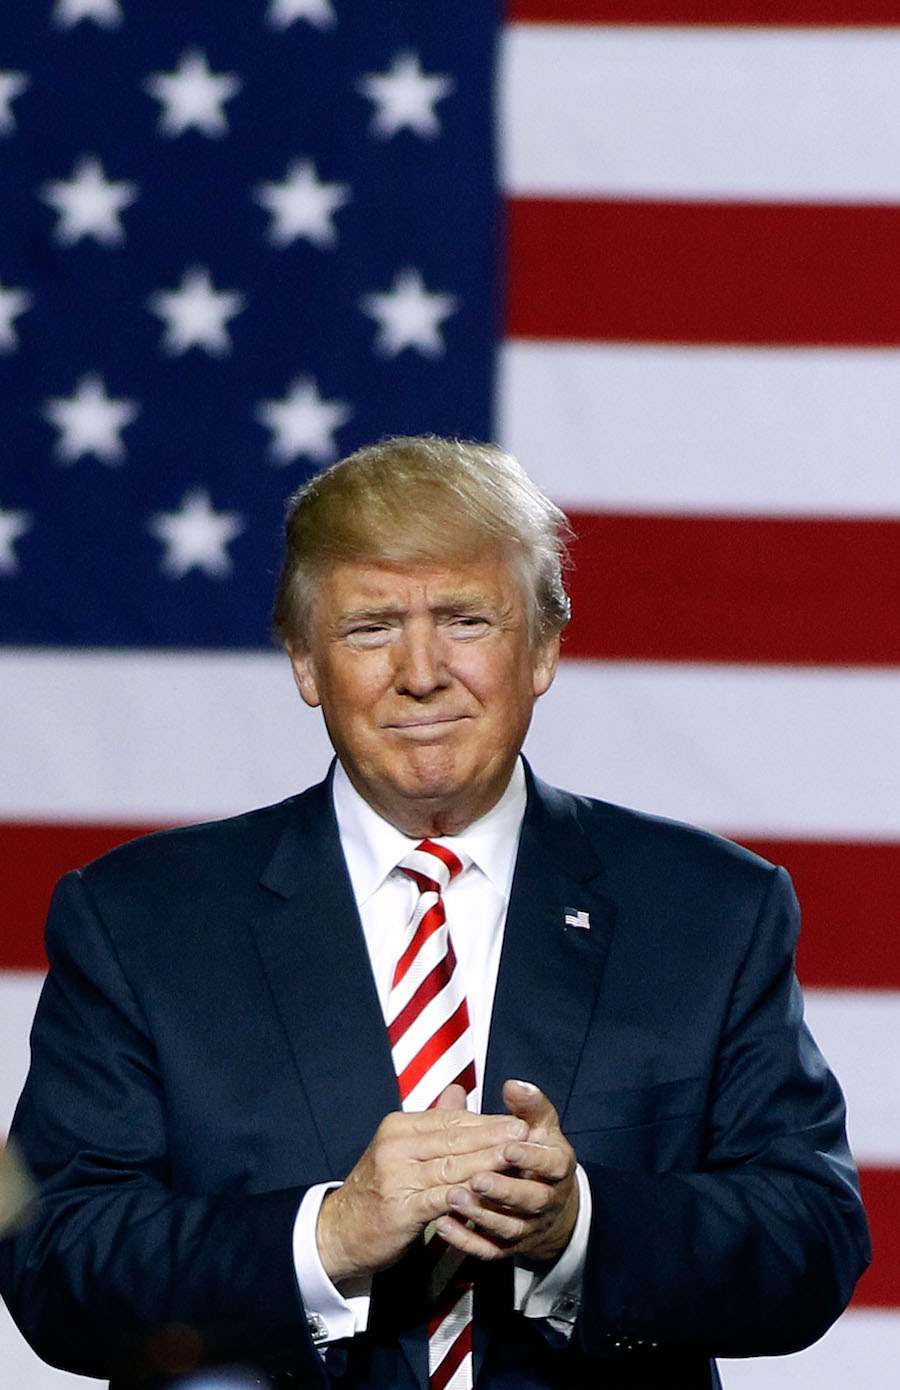 donald-trump-estados-unidos-candidato-republicano